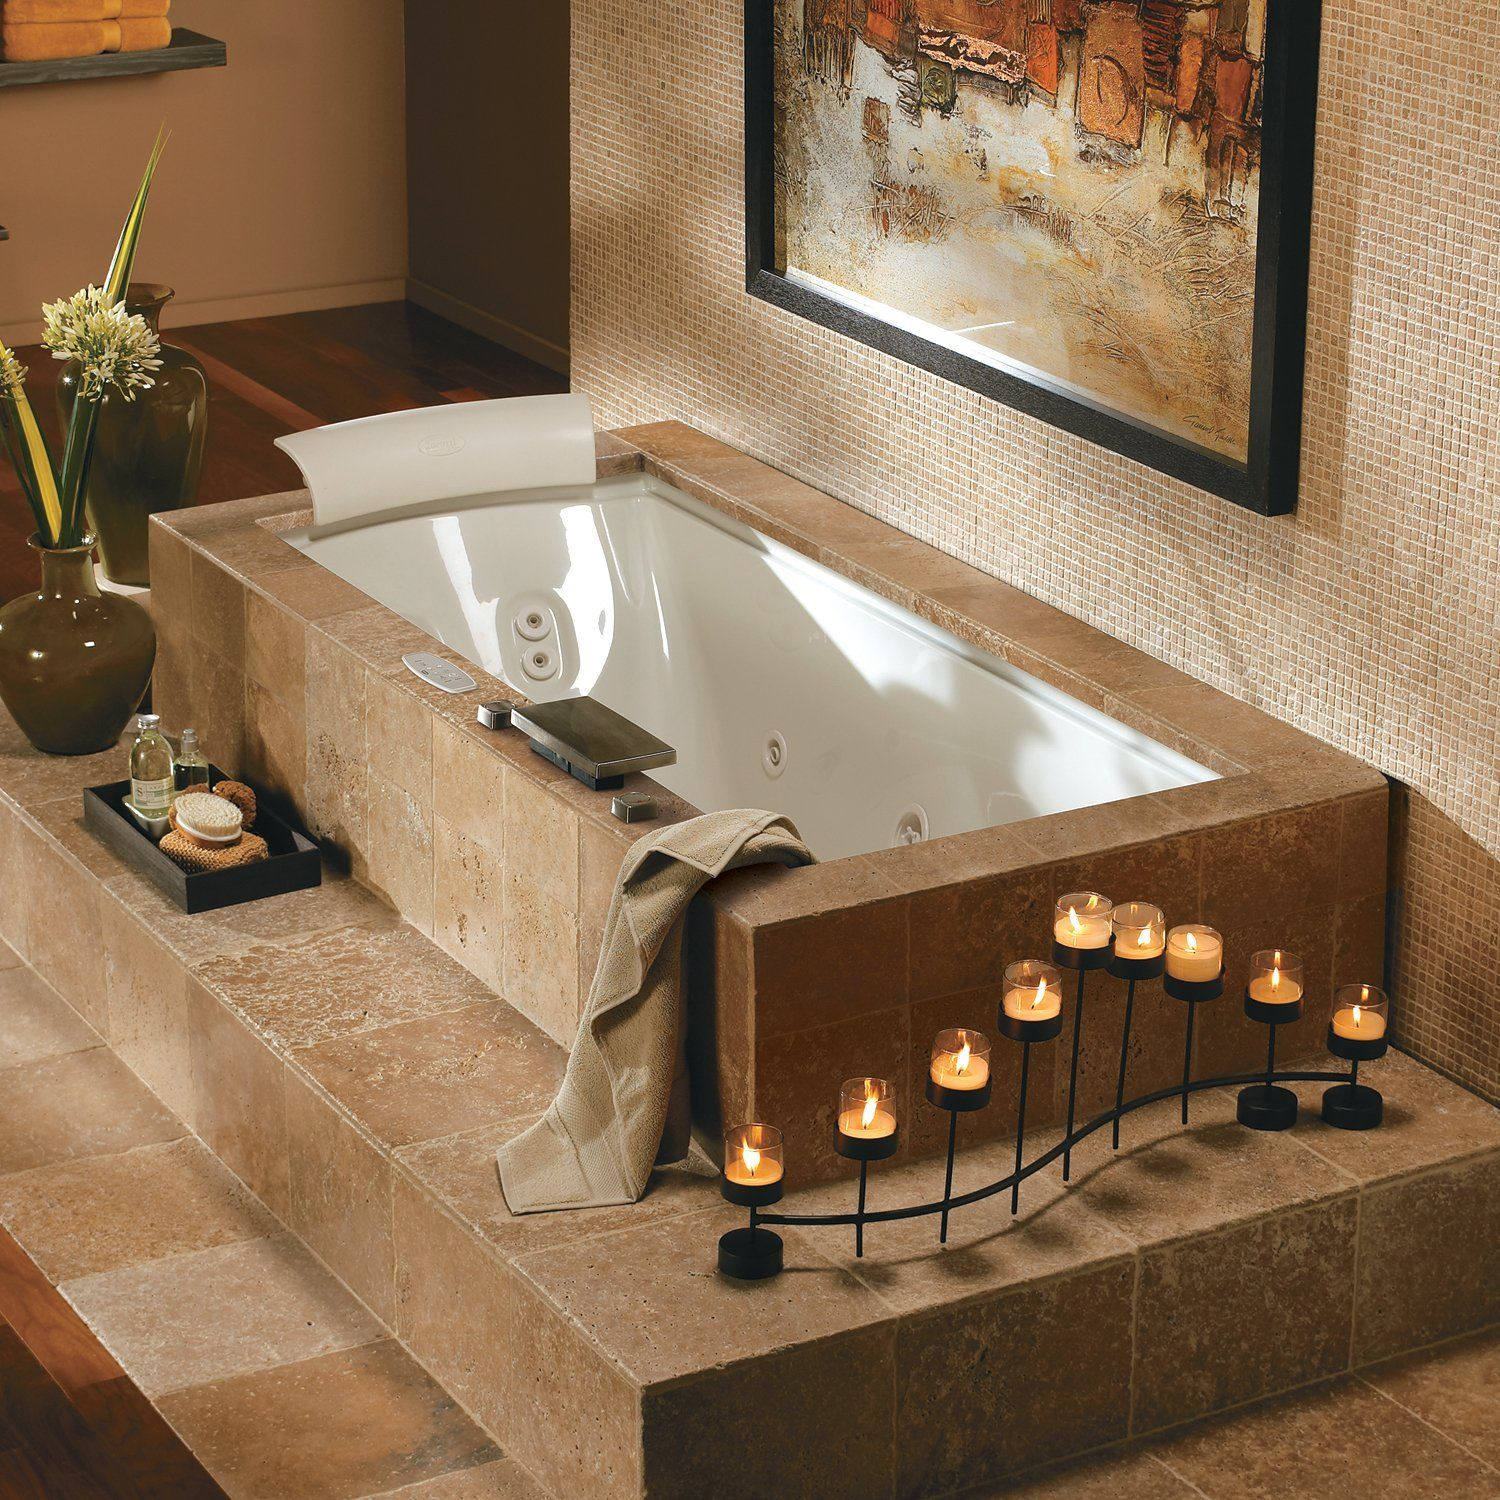 Bathroom Jacuzzi Tub jacuzzi whirlpool fuz7236w fuzion undermount drop-in tub at atg